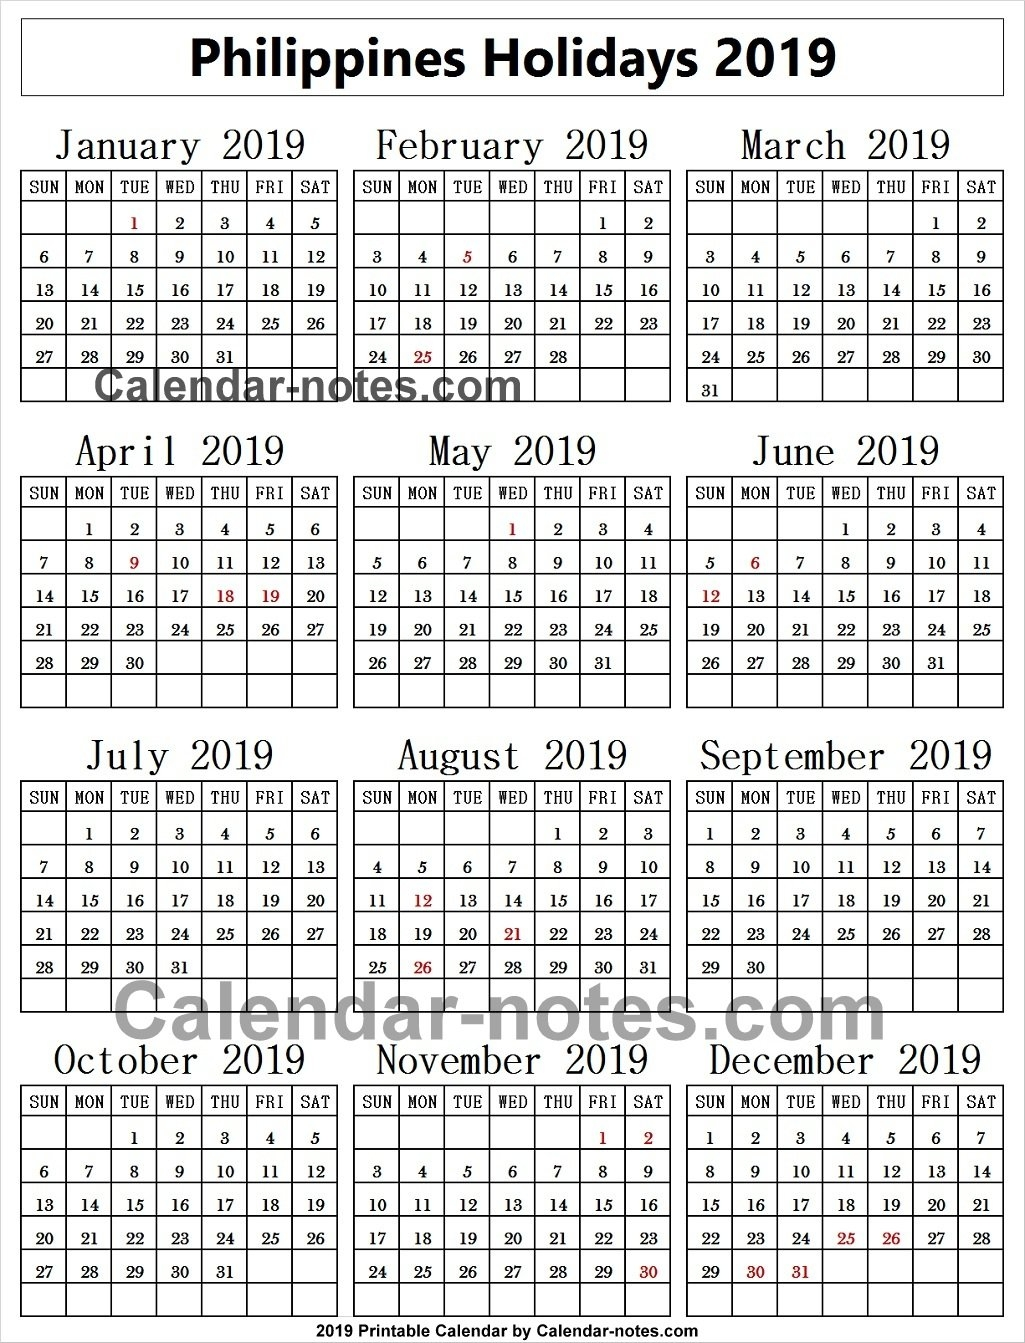 Philippines Holiday 2019 Calendar | 2019 Philippines Calendar Template Calendar Year 2019 Philippines